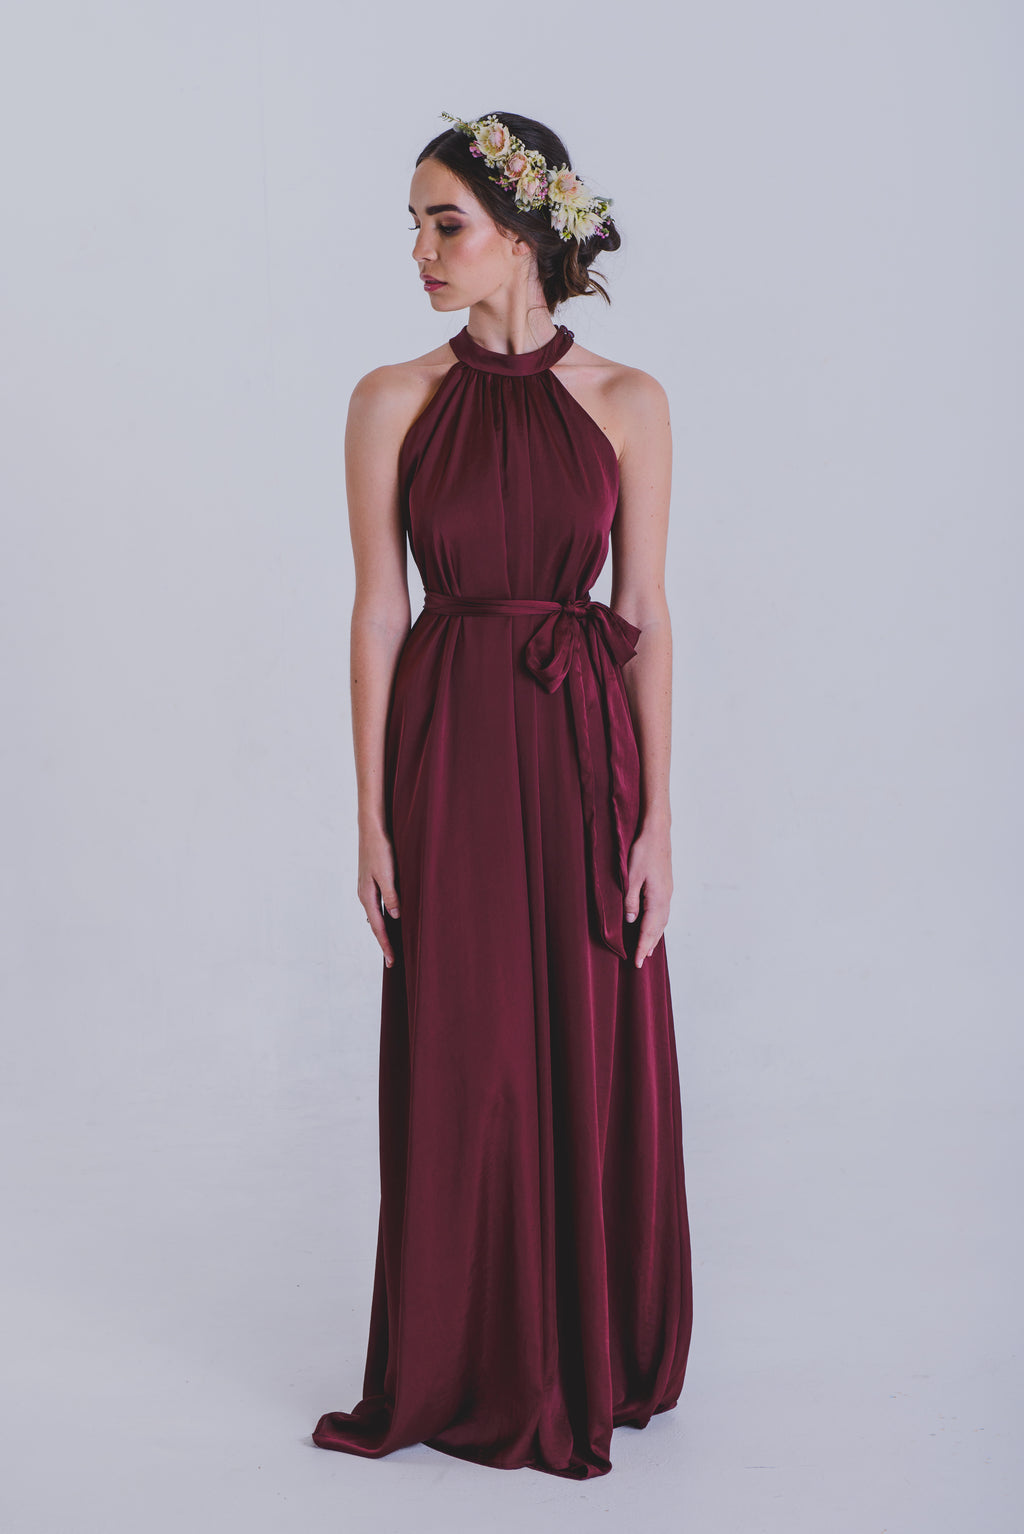 Erin Halter Neck Dress - Burgundy